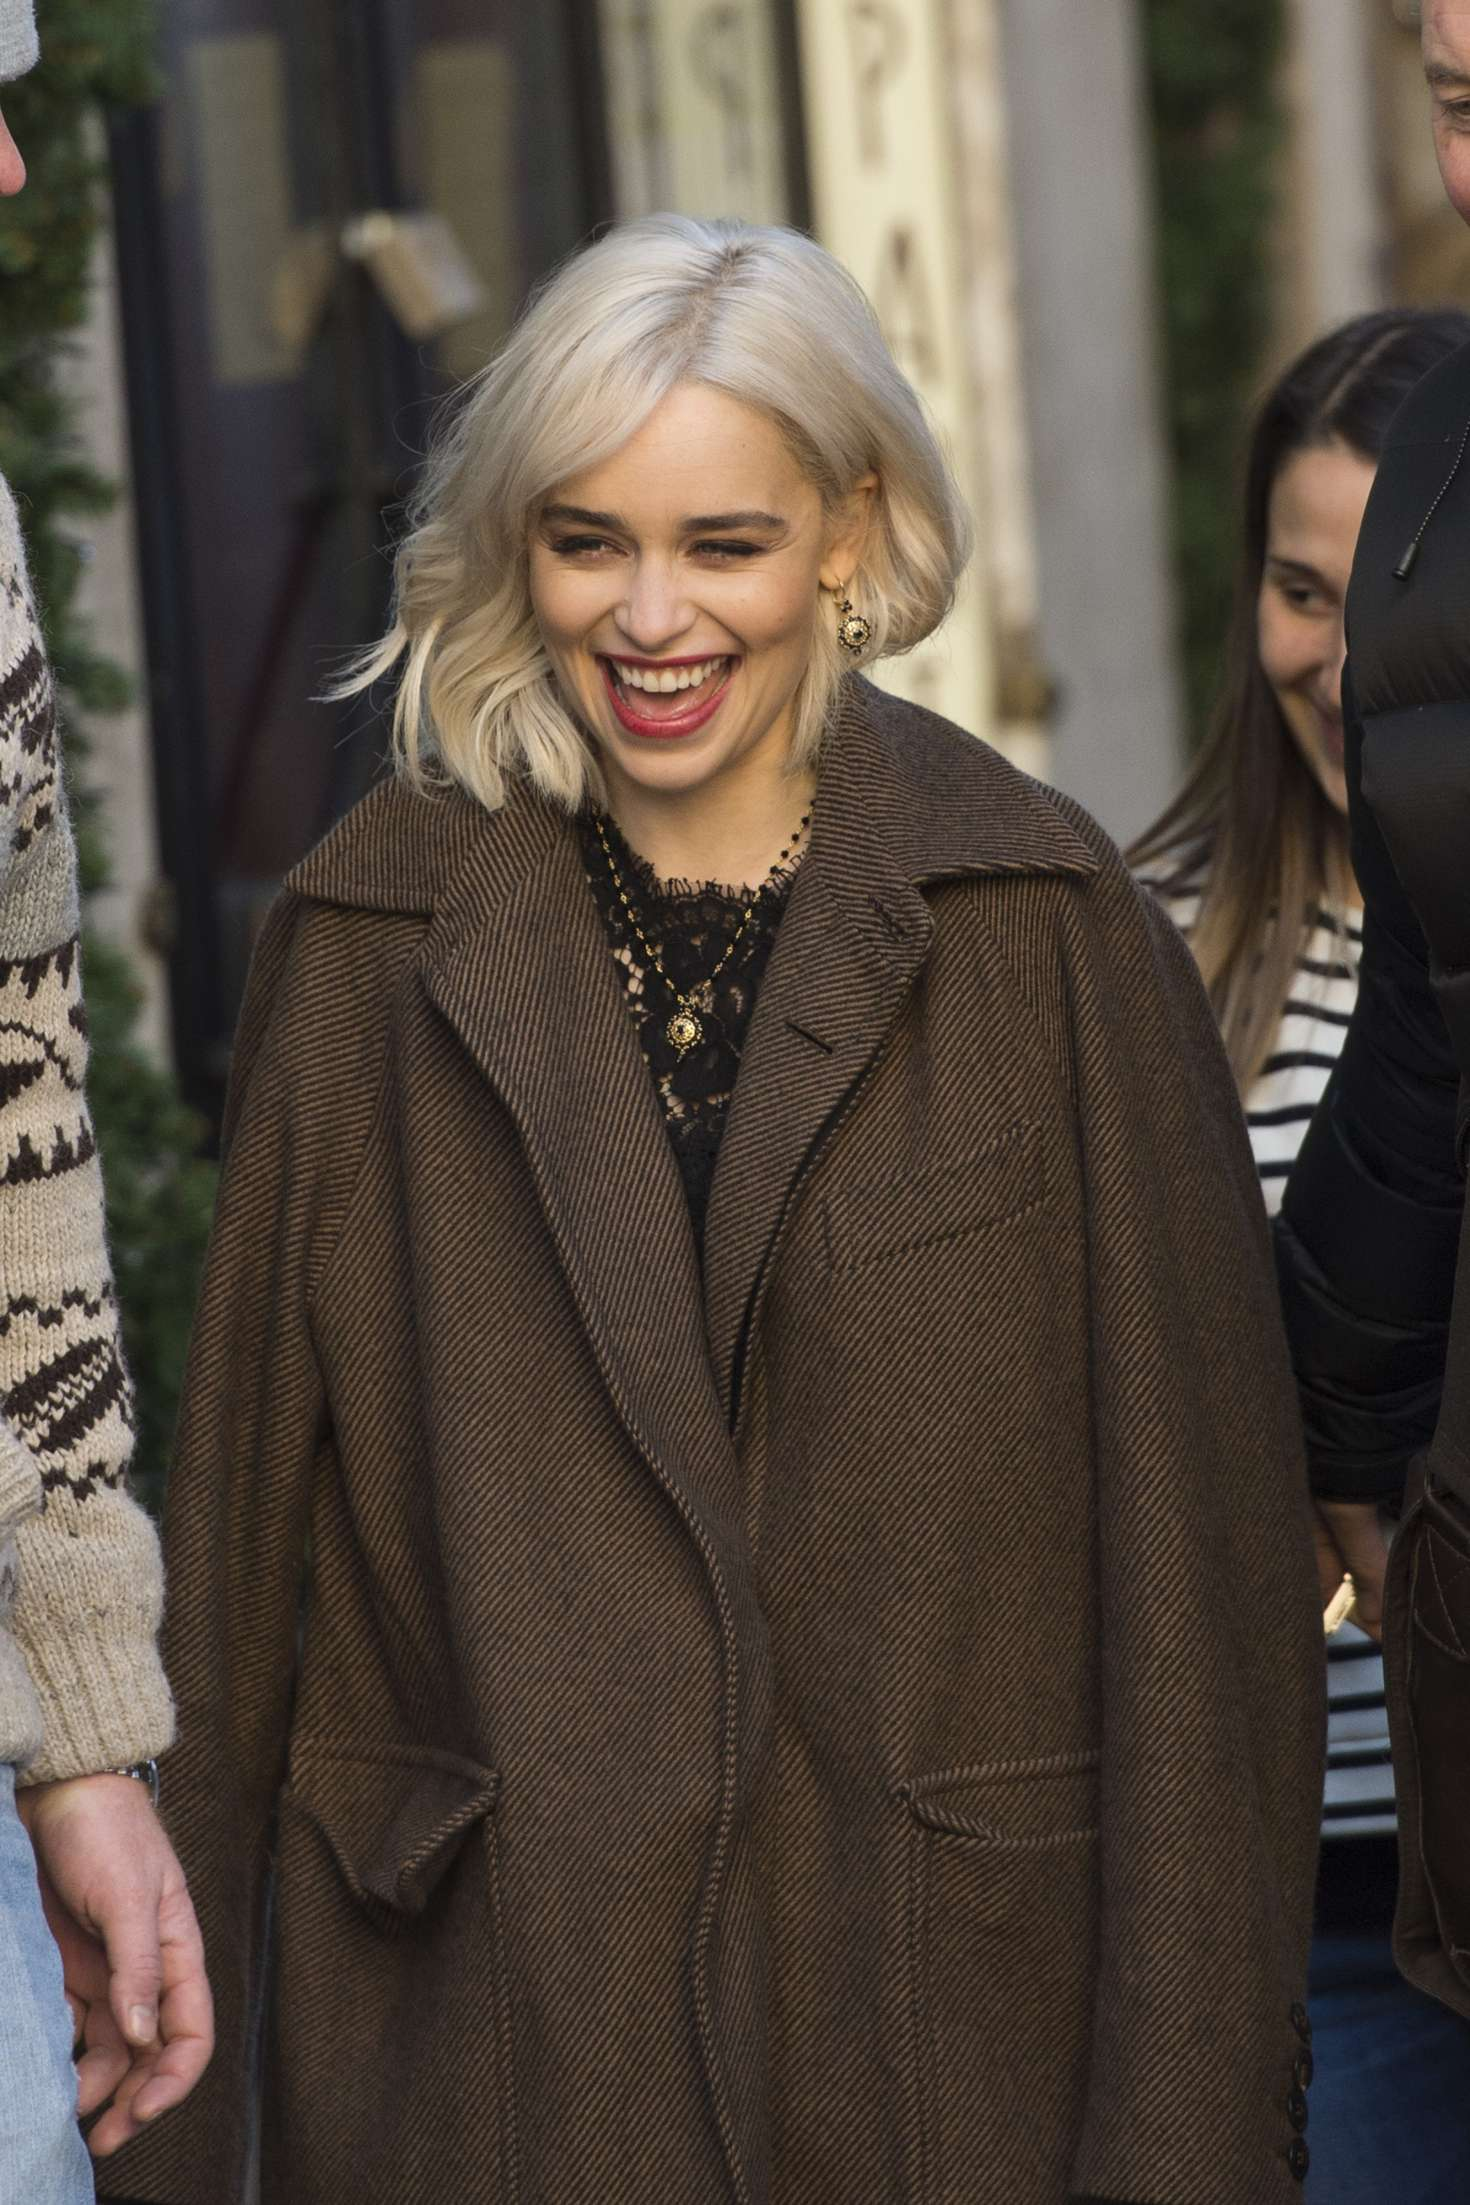 Emilia Clarke - On the set of a Dolce and Gabbana commercial in Rome